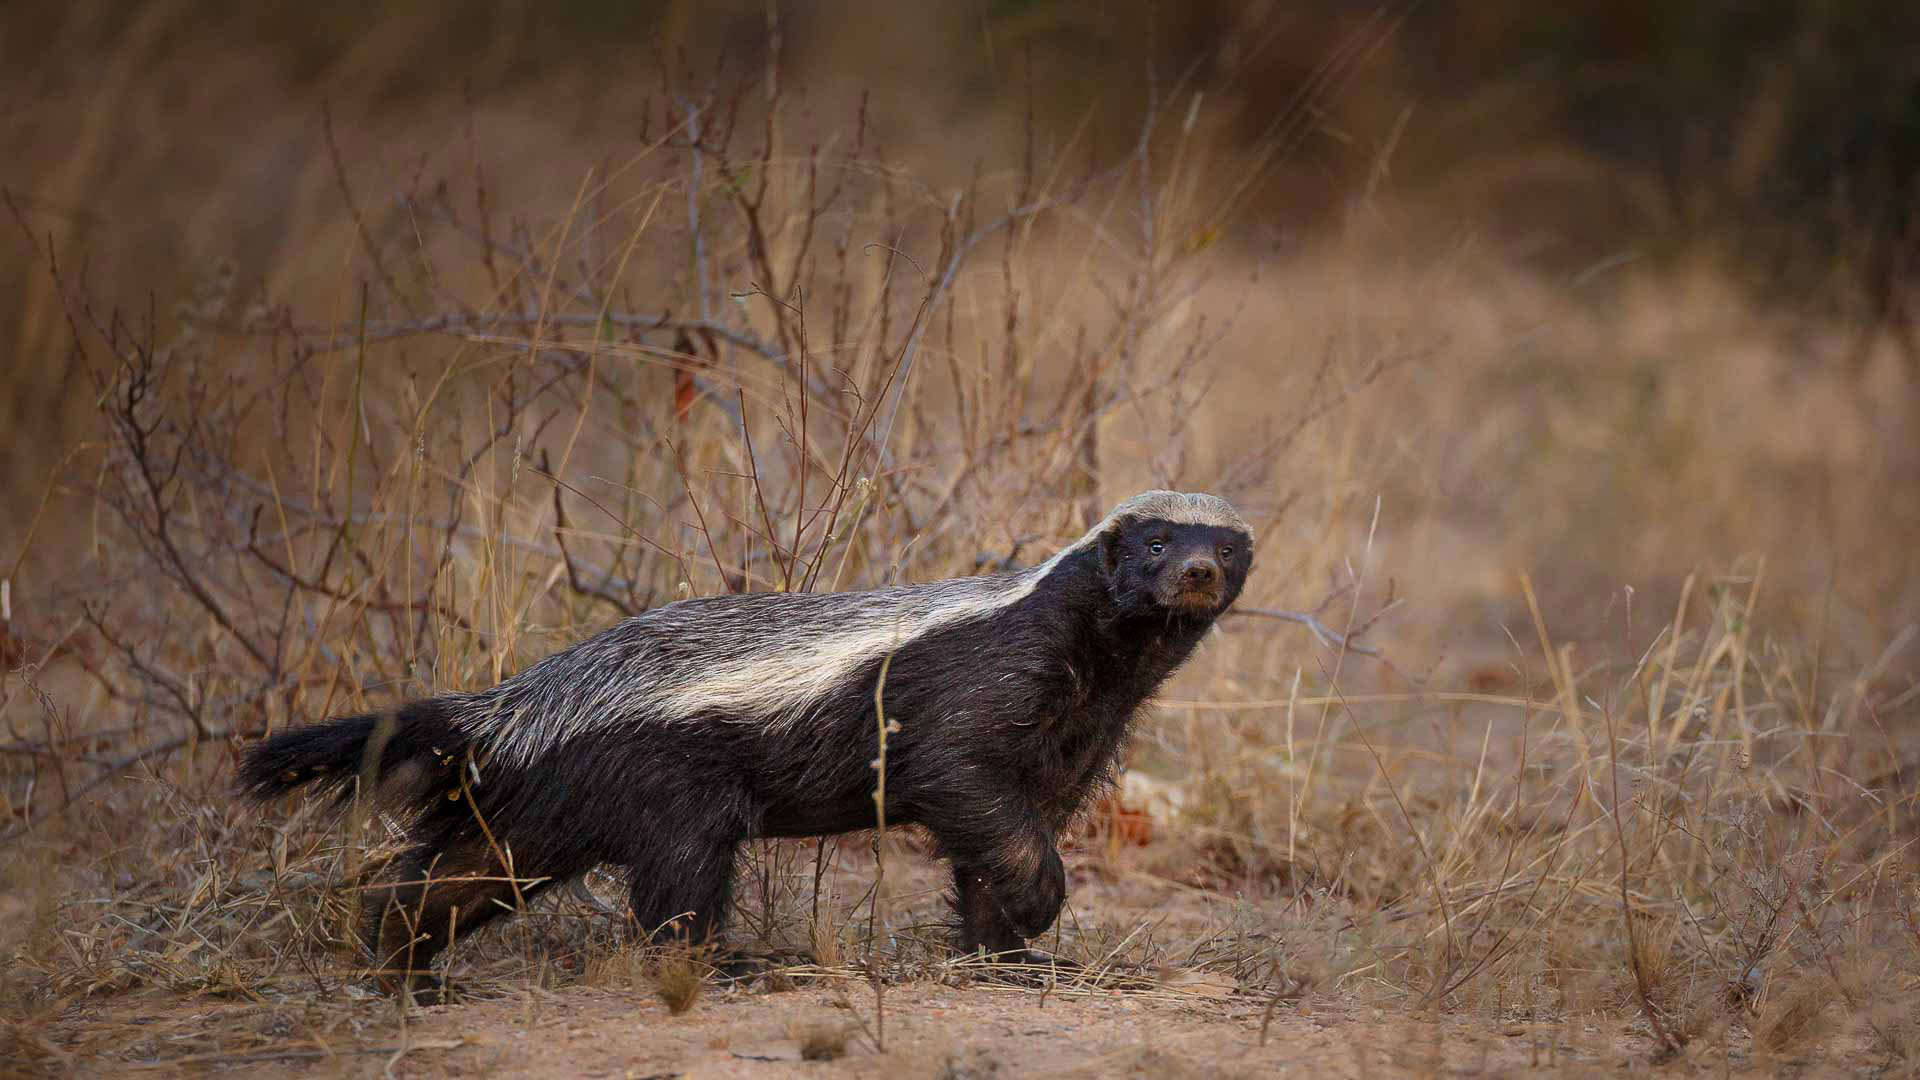 Tanda Tula - honey badger on the move in the Greater Kruger, South Africa